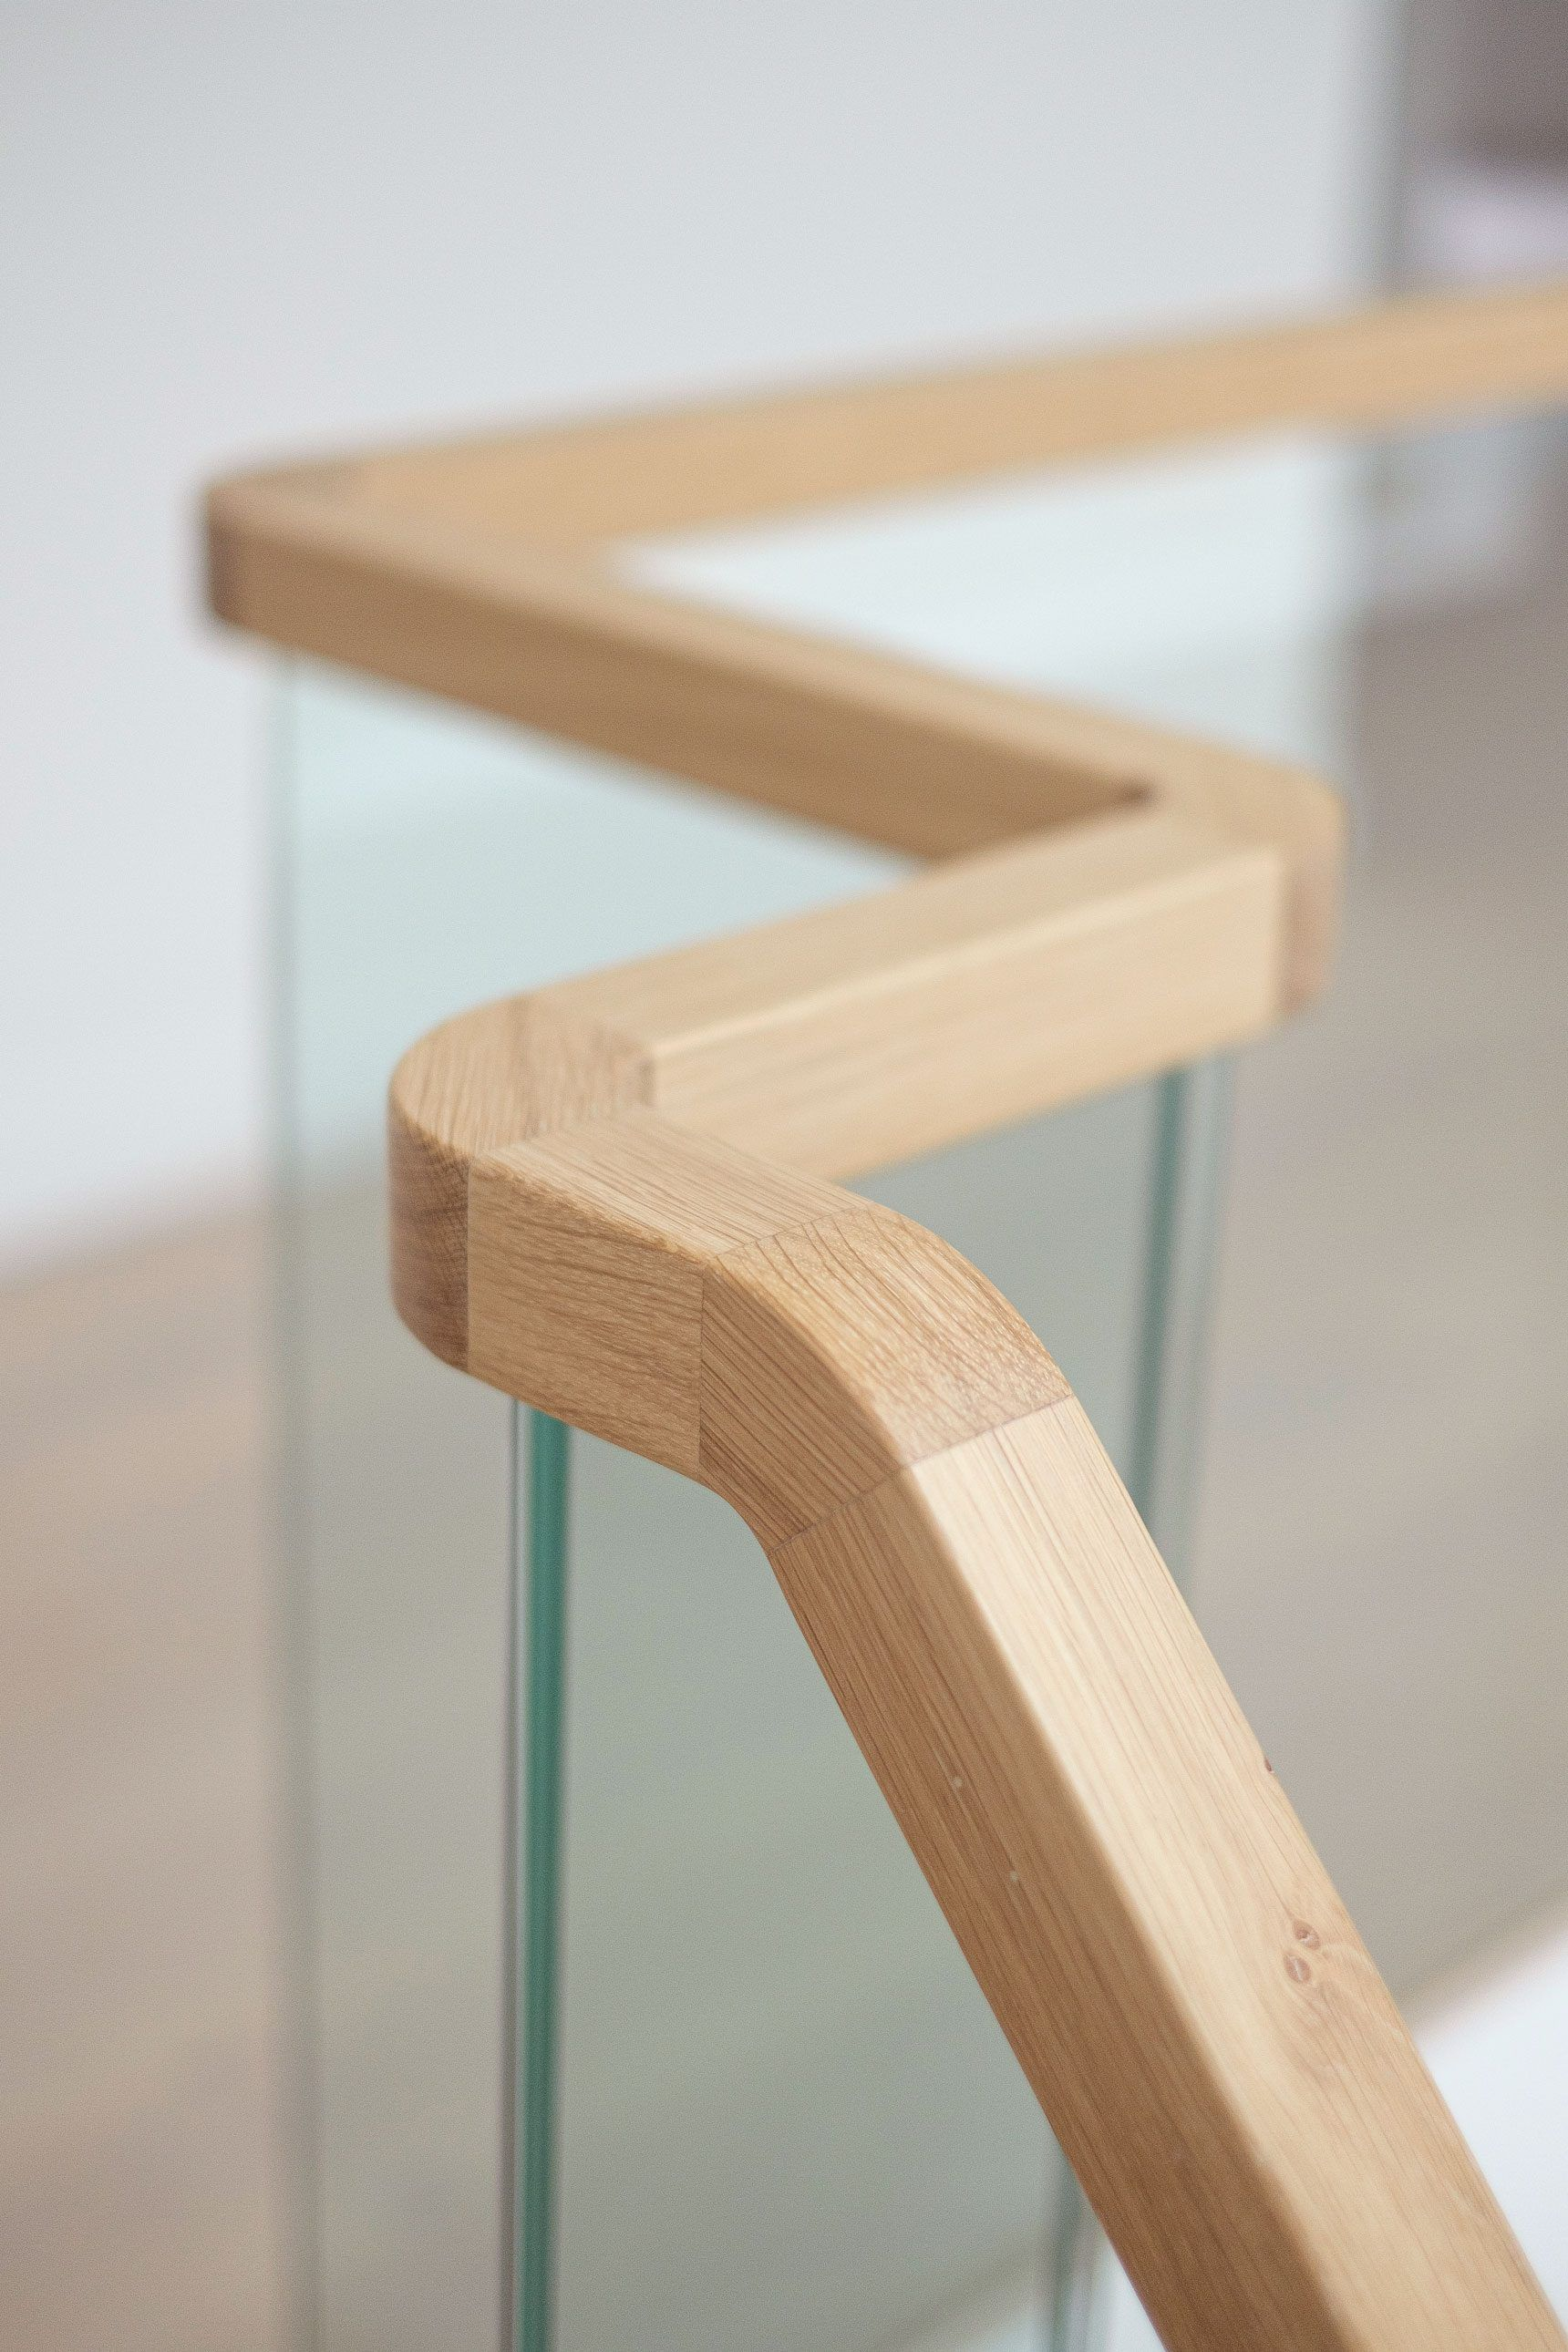 Square section oak handrail on a glass balustrade.